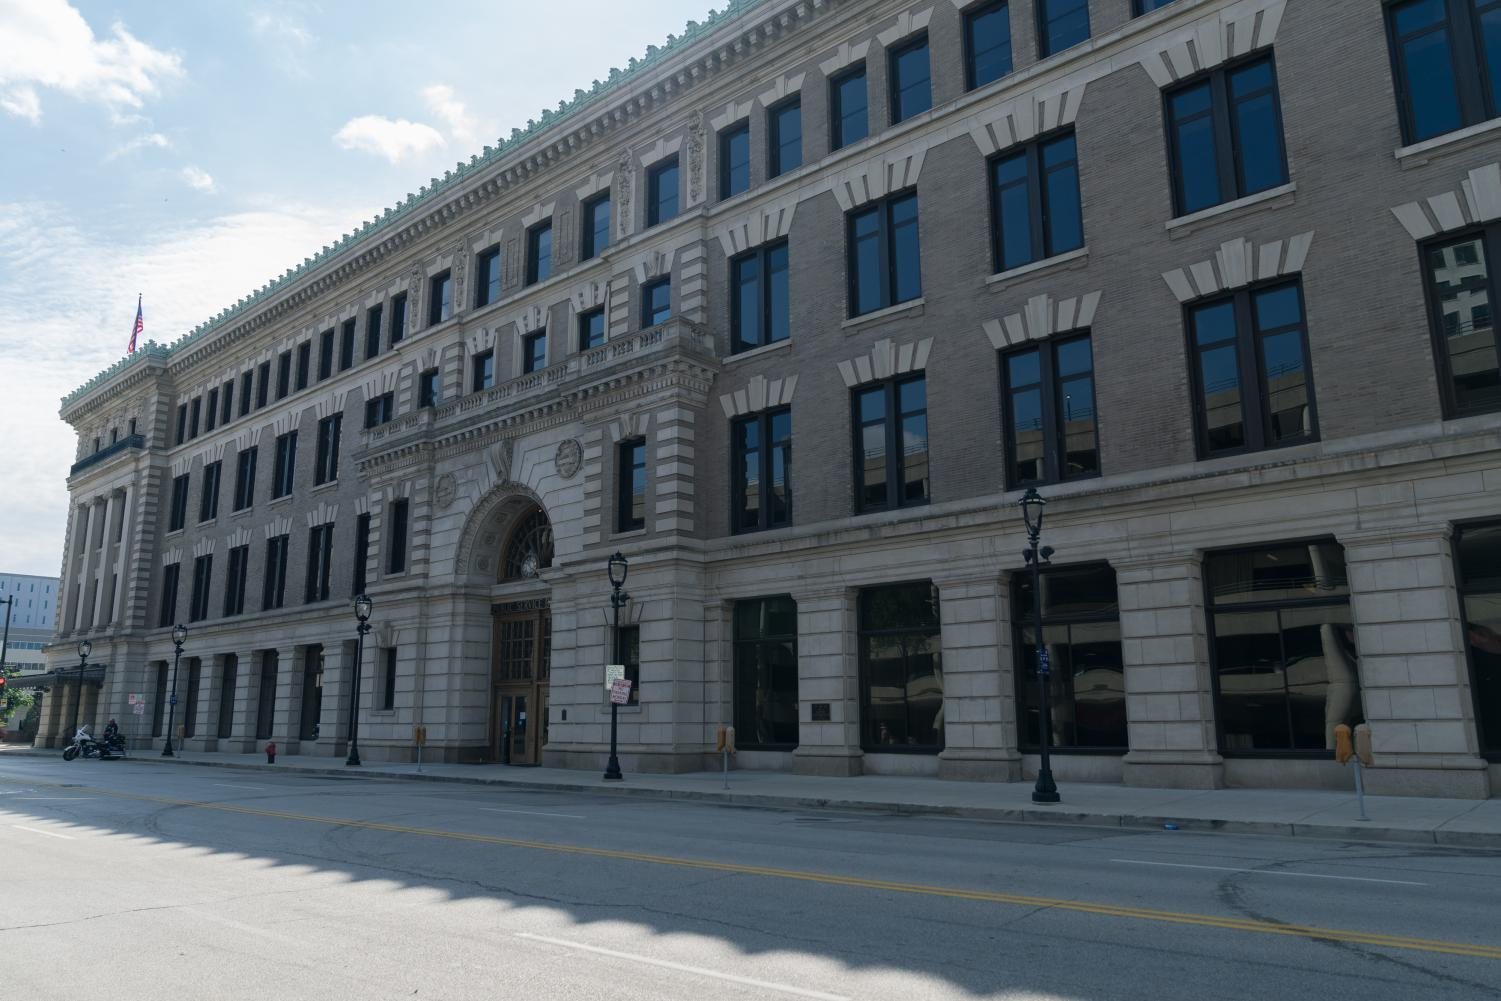 The unGALA switches venues periodically, and this year the event will take place at the We Energies Public Service Building.